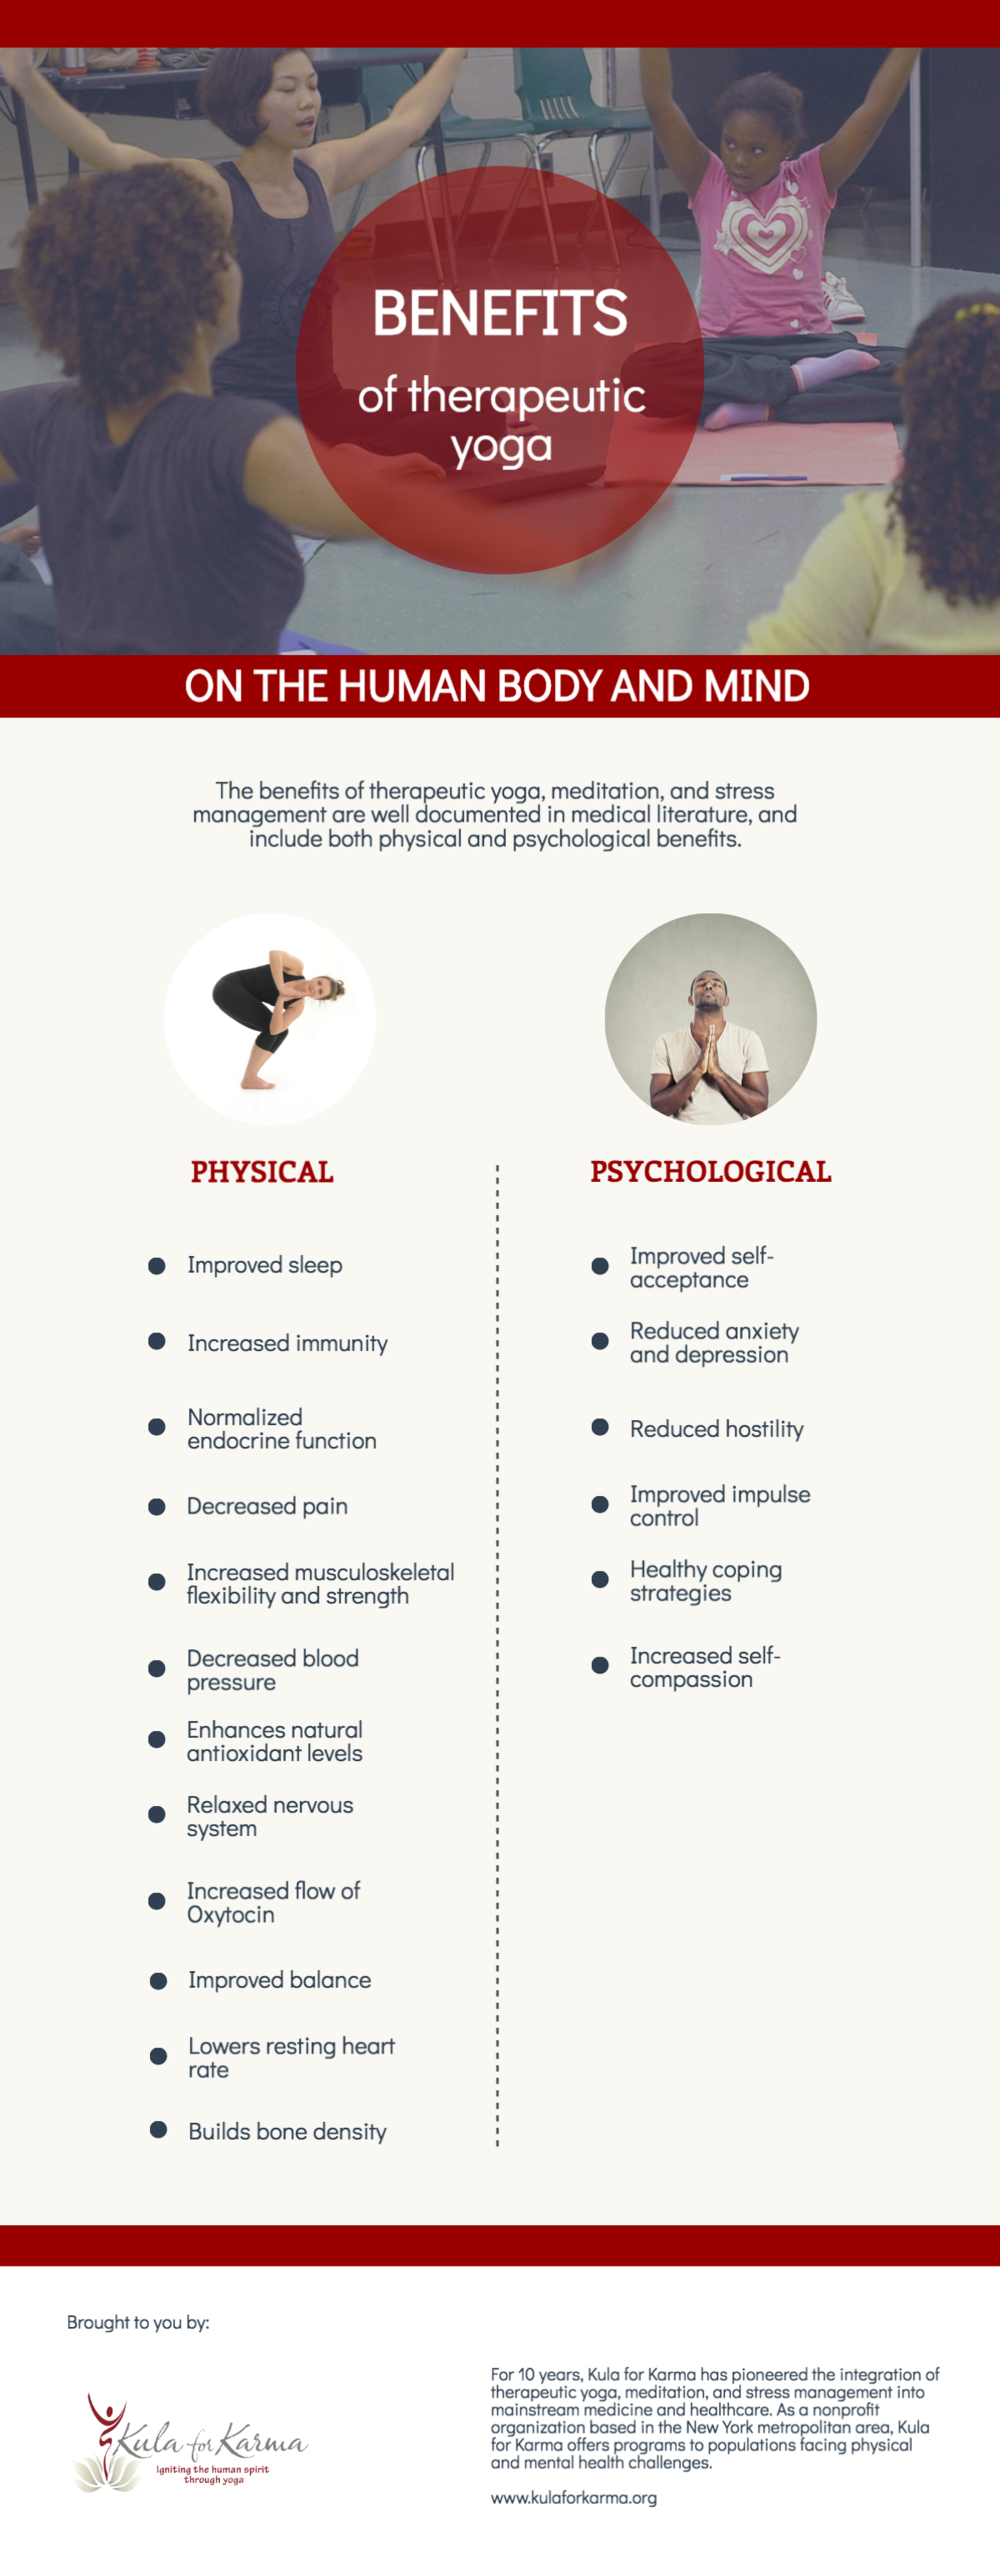 The Benefits of Therapeutic Yoga